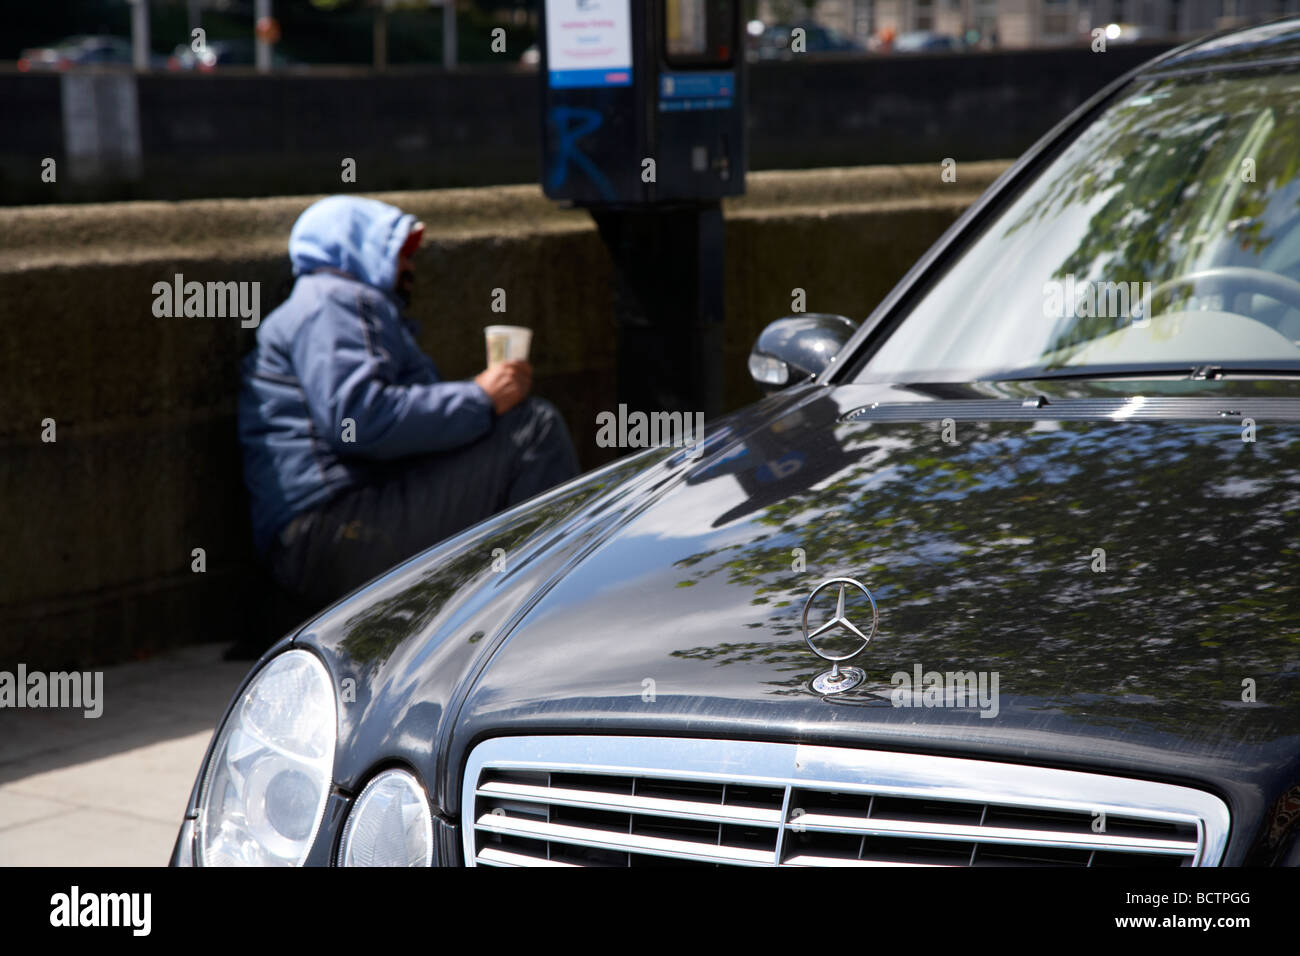 street beggar lying beside a parking ticket machine and mercedes car looking for spare change dublin city - Stock Image